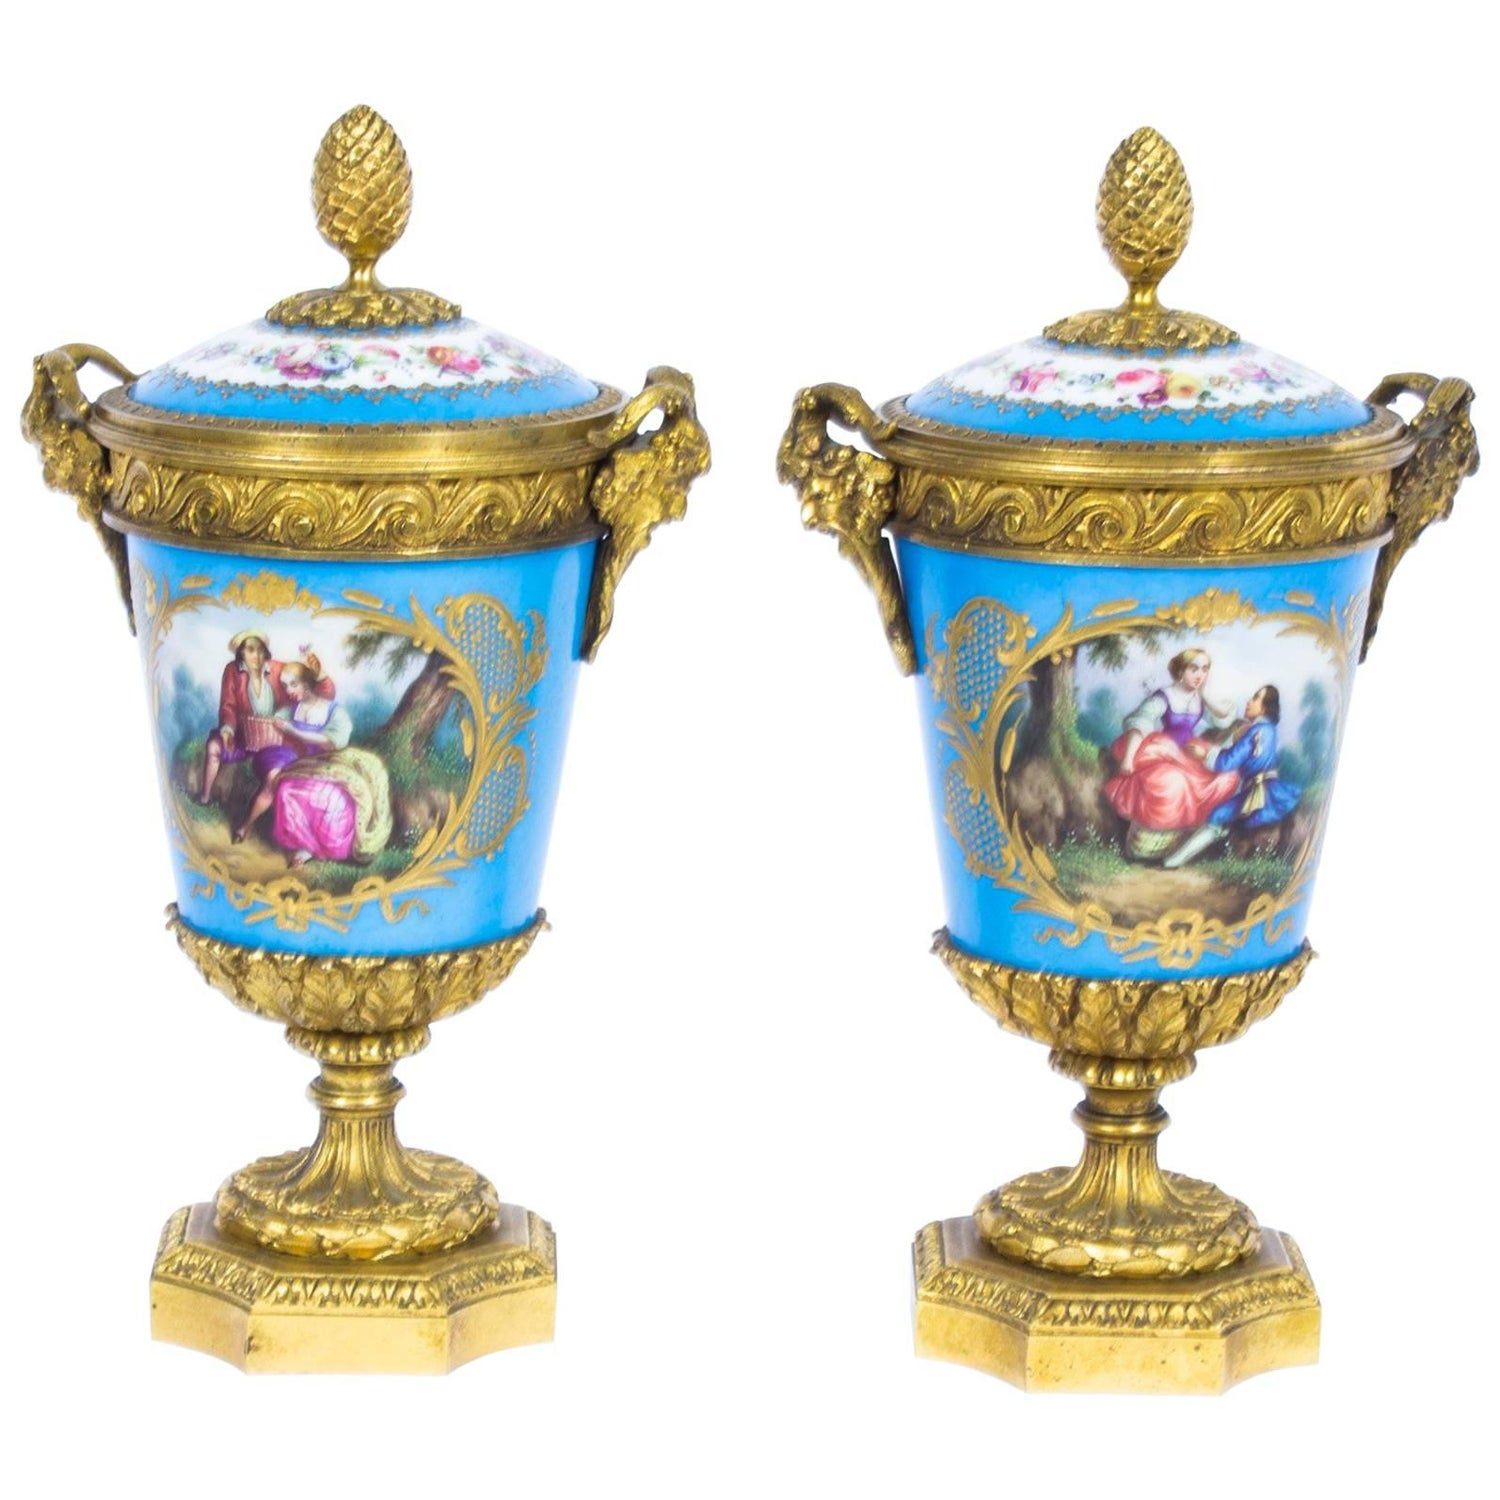 19th century pair of french ormolu mounted svres lidded urns 19th century pair of french ormolu mounted svres lidded urns vases for sale at 1stdibs reviewsmspy